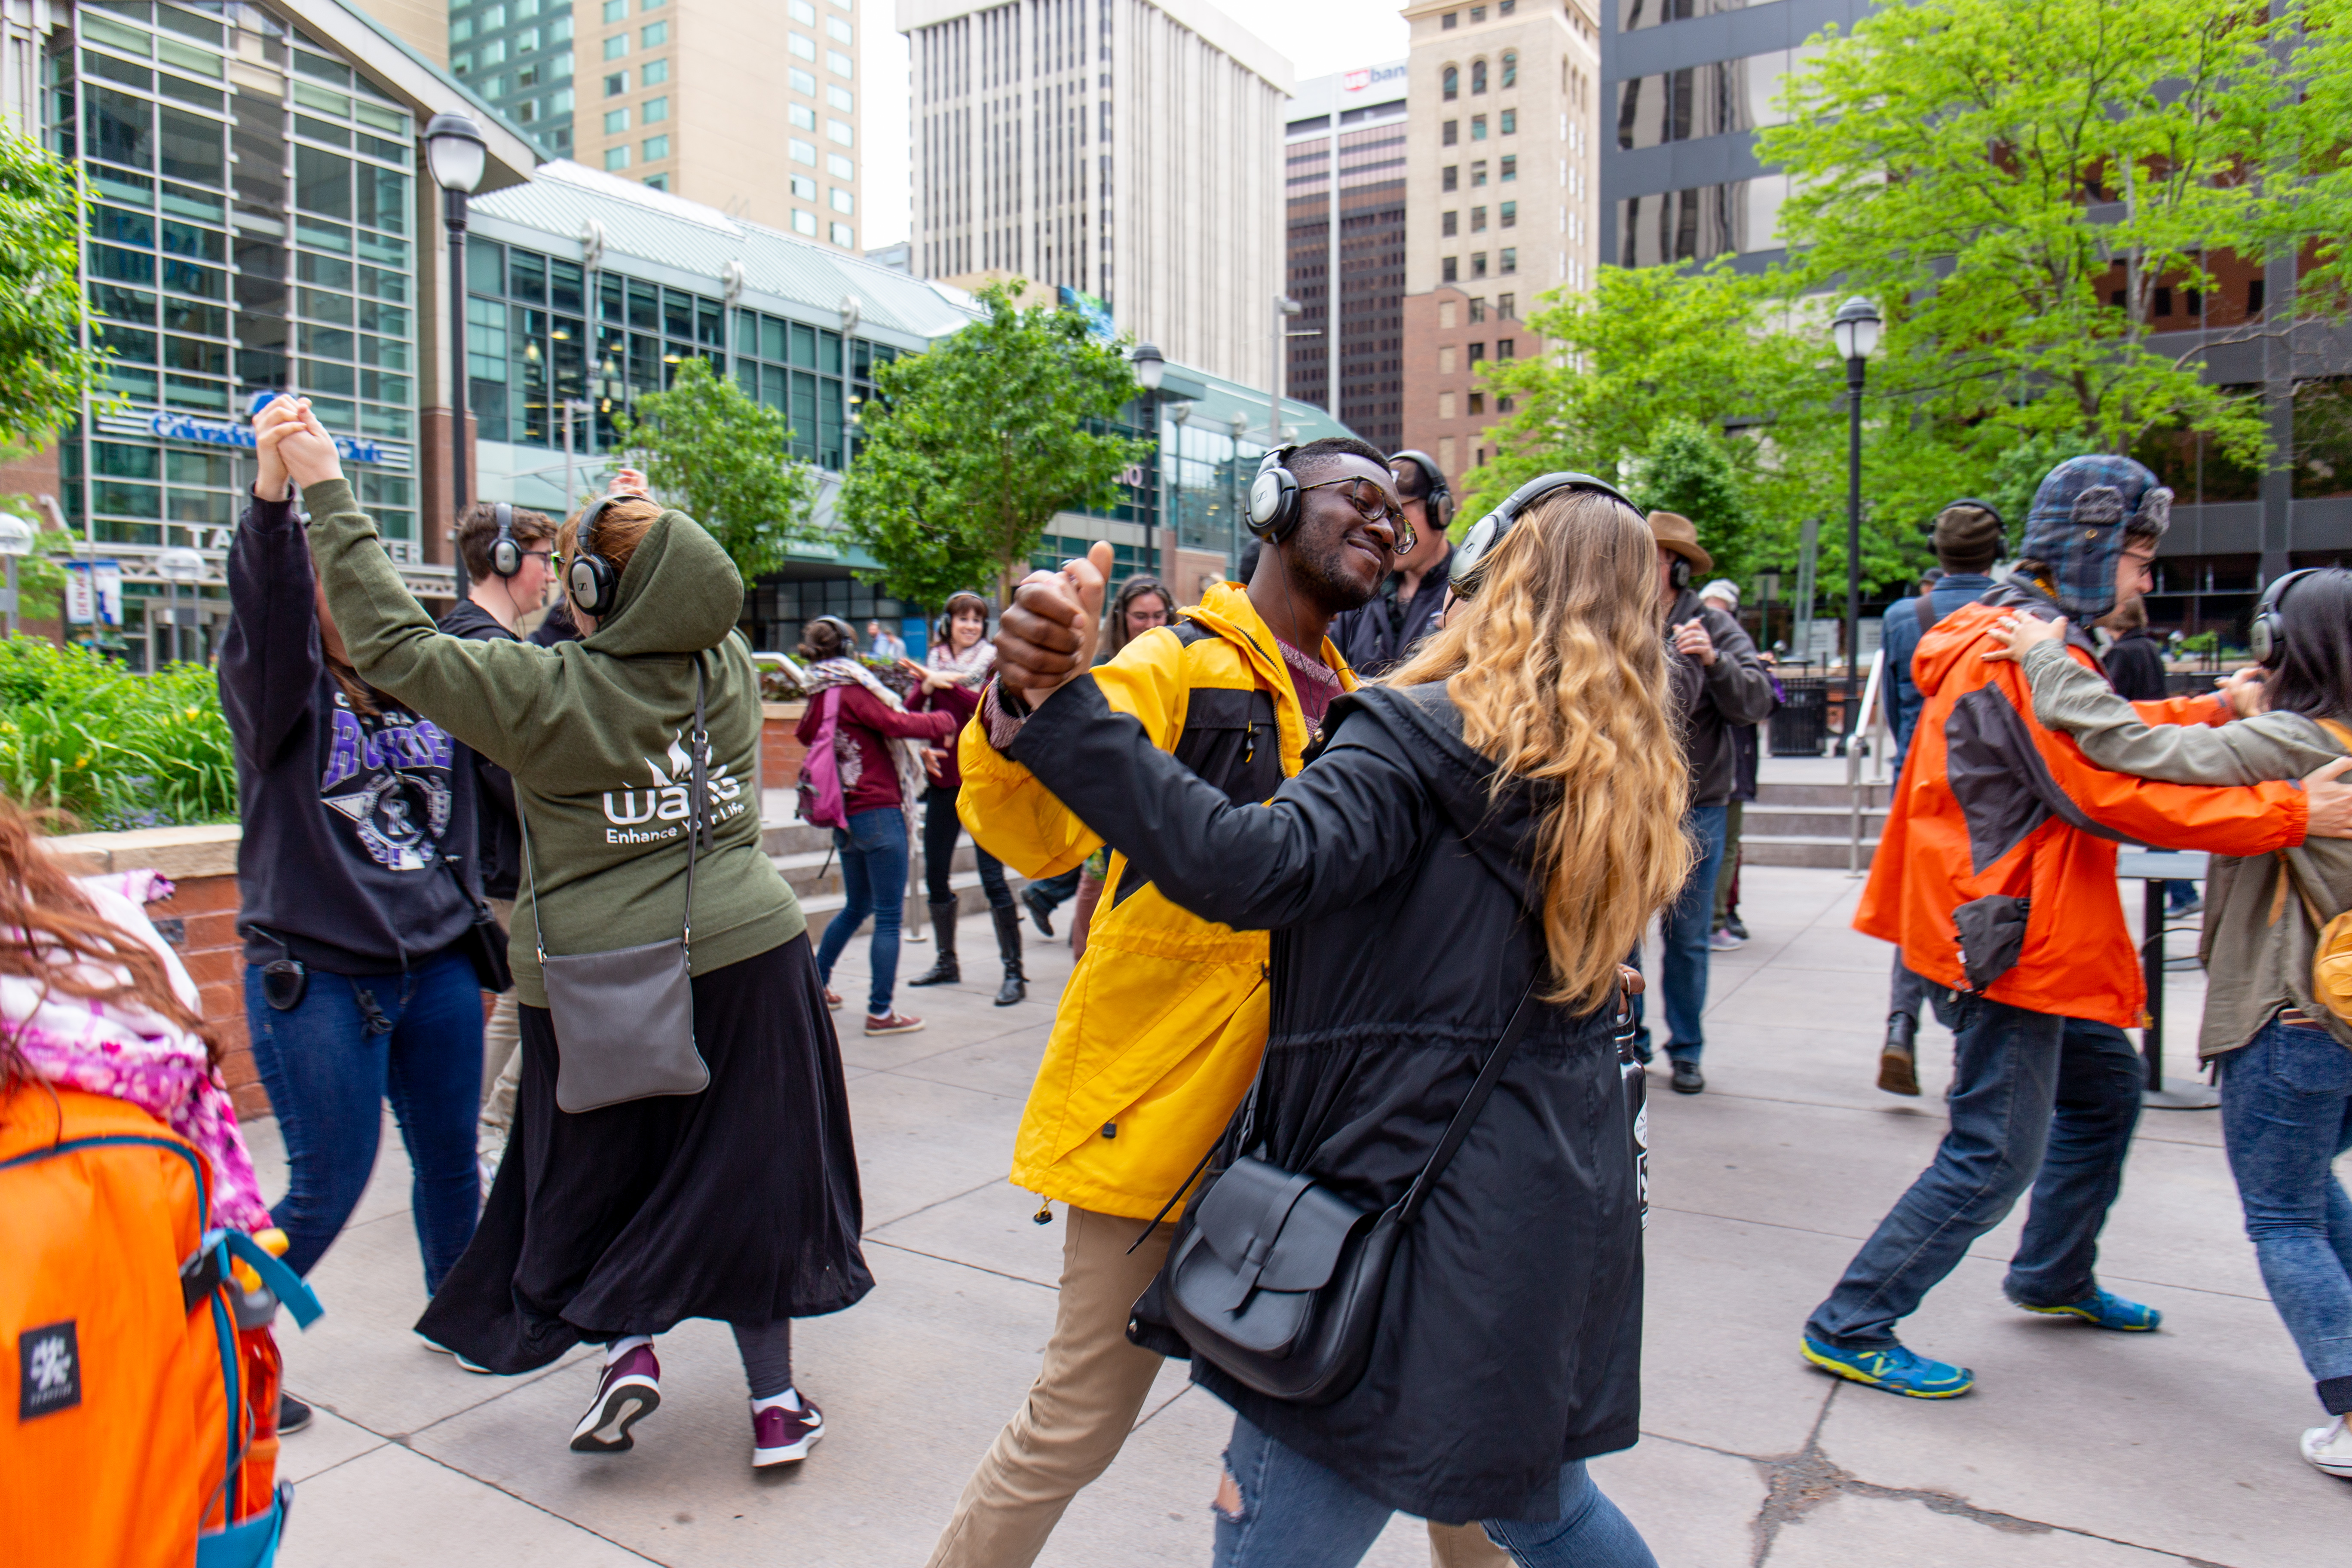 A diverse group of people wear headphones and dance with each other in an urban area.